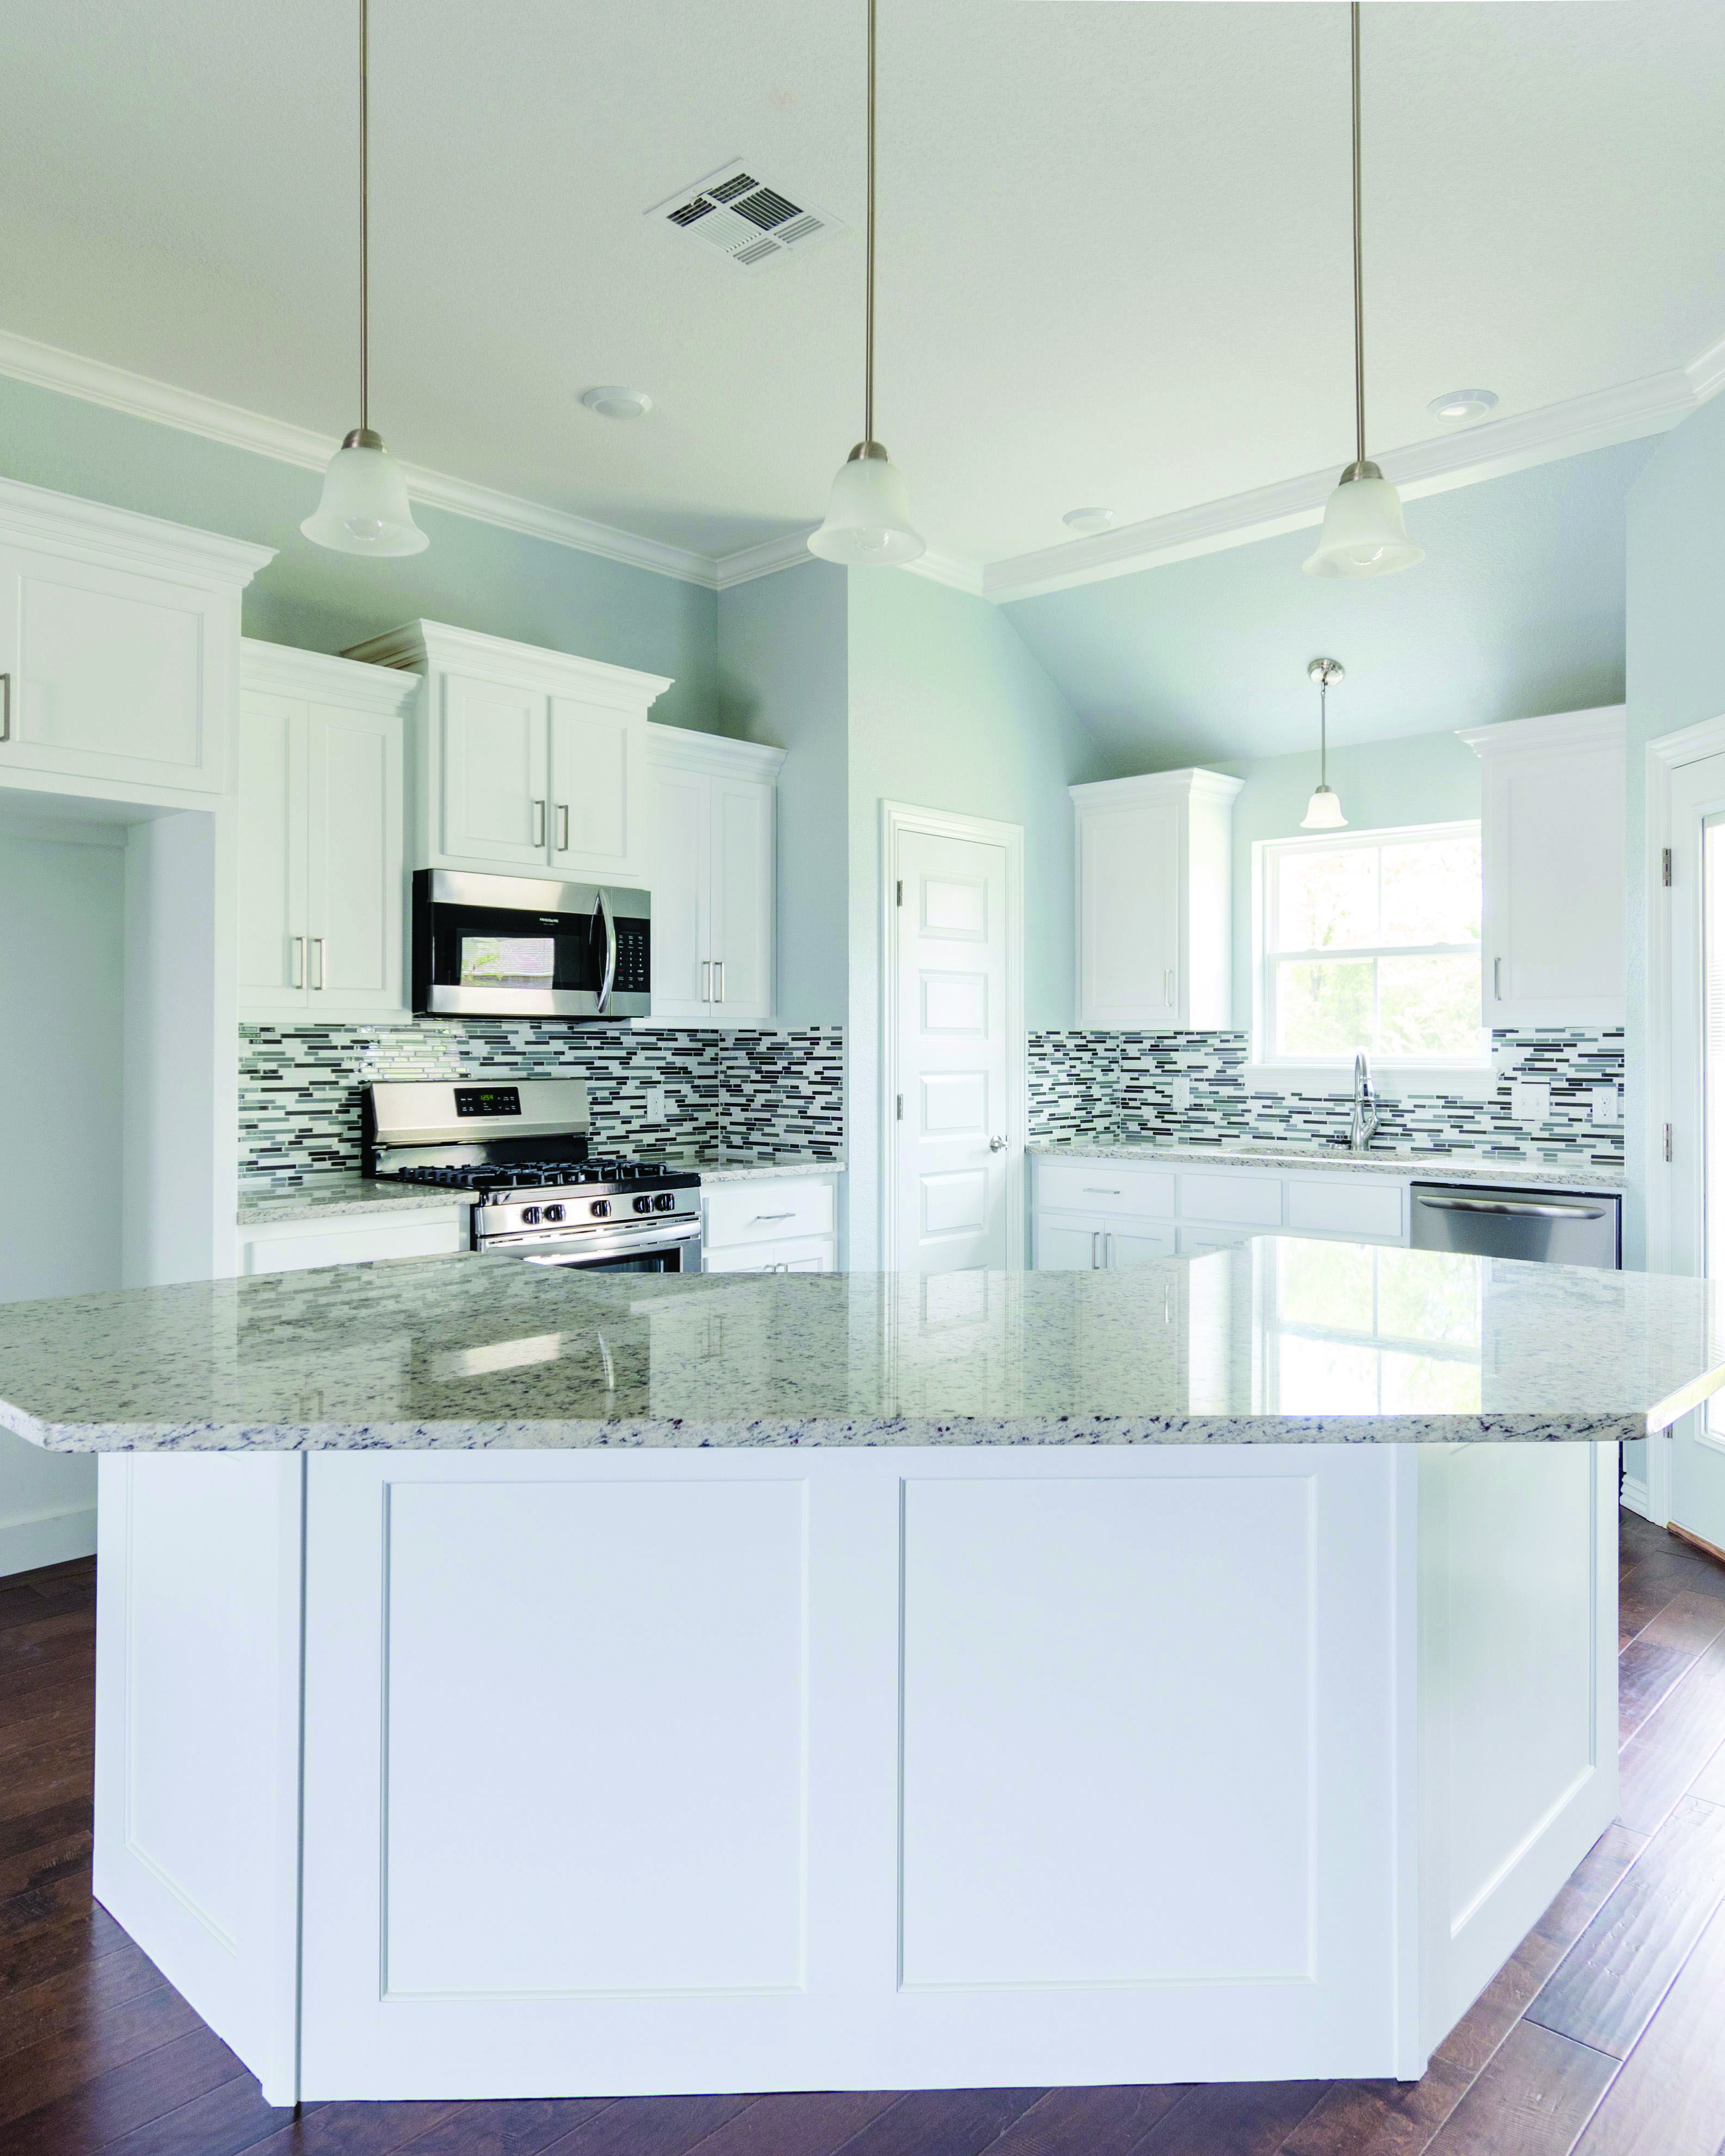 Download Wallpaper White Kitchen Cabinets And Light Blue Walls